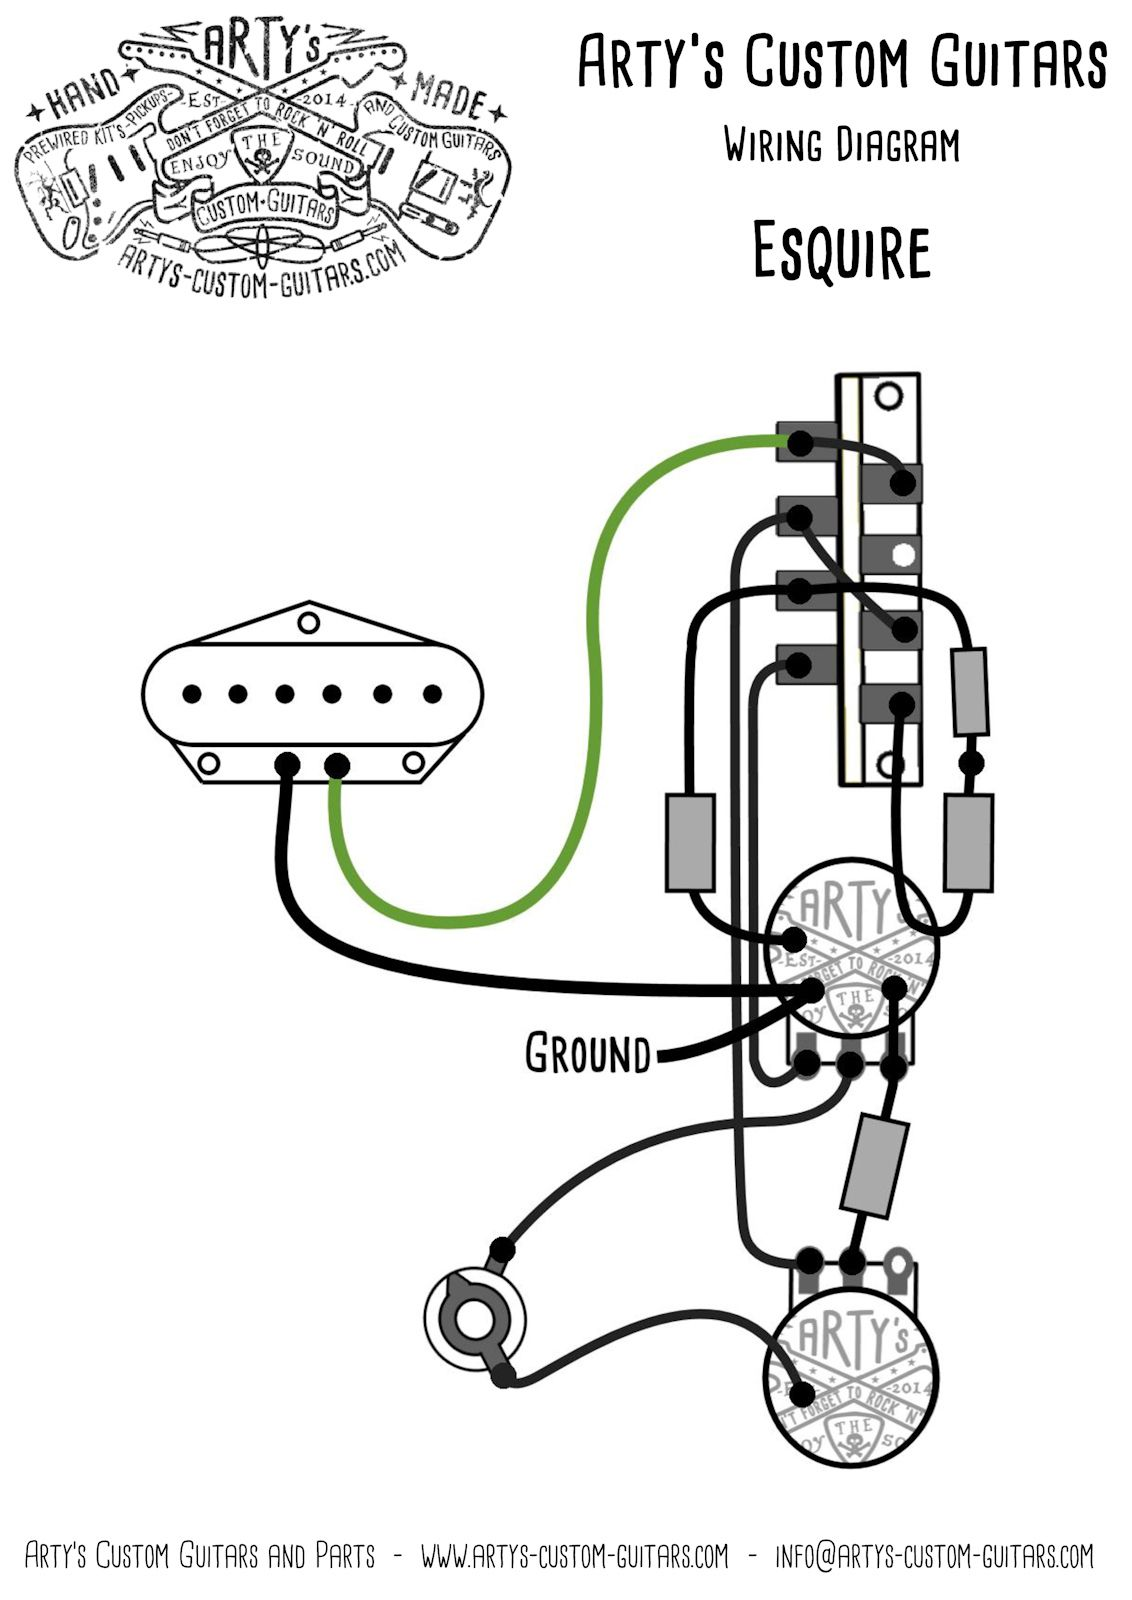 esquire wiring diagram prewired kit arty s custom guitars [ 1132 x 1600 Pixel ]